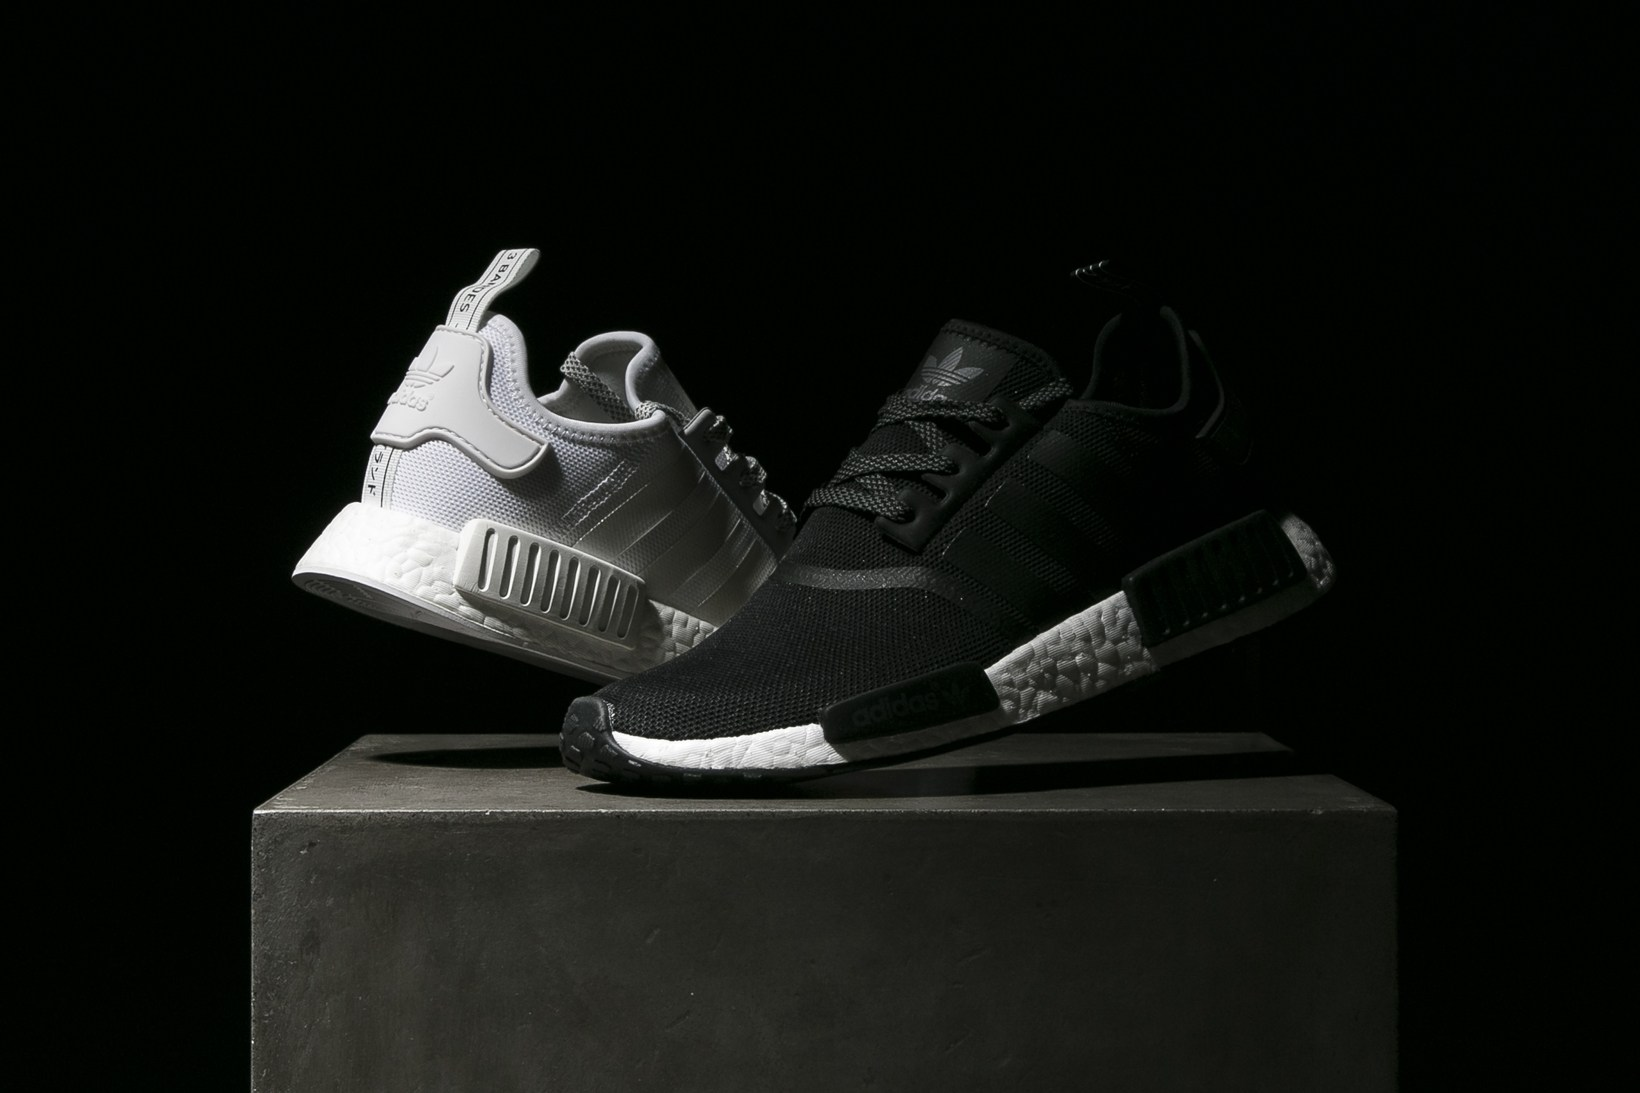 adidas-nmd-r1-core-black-white-reflective-1